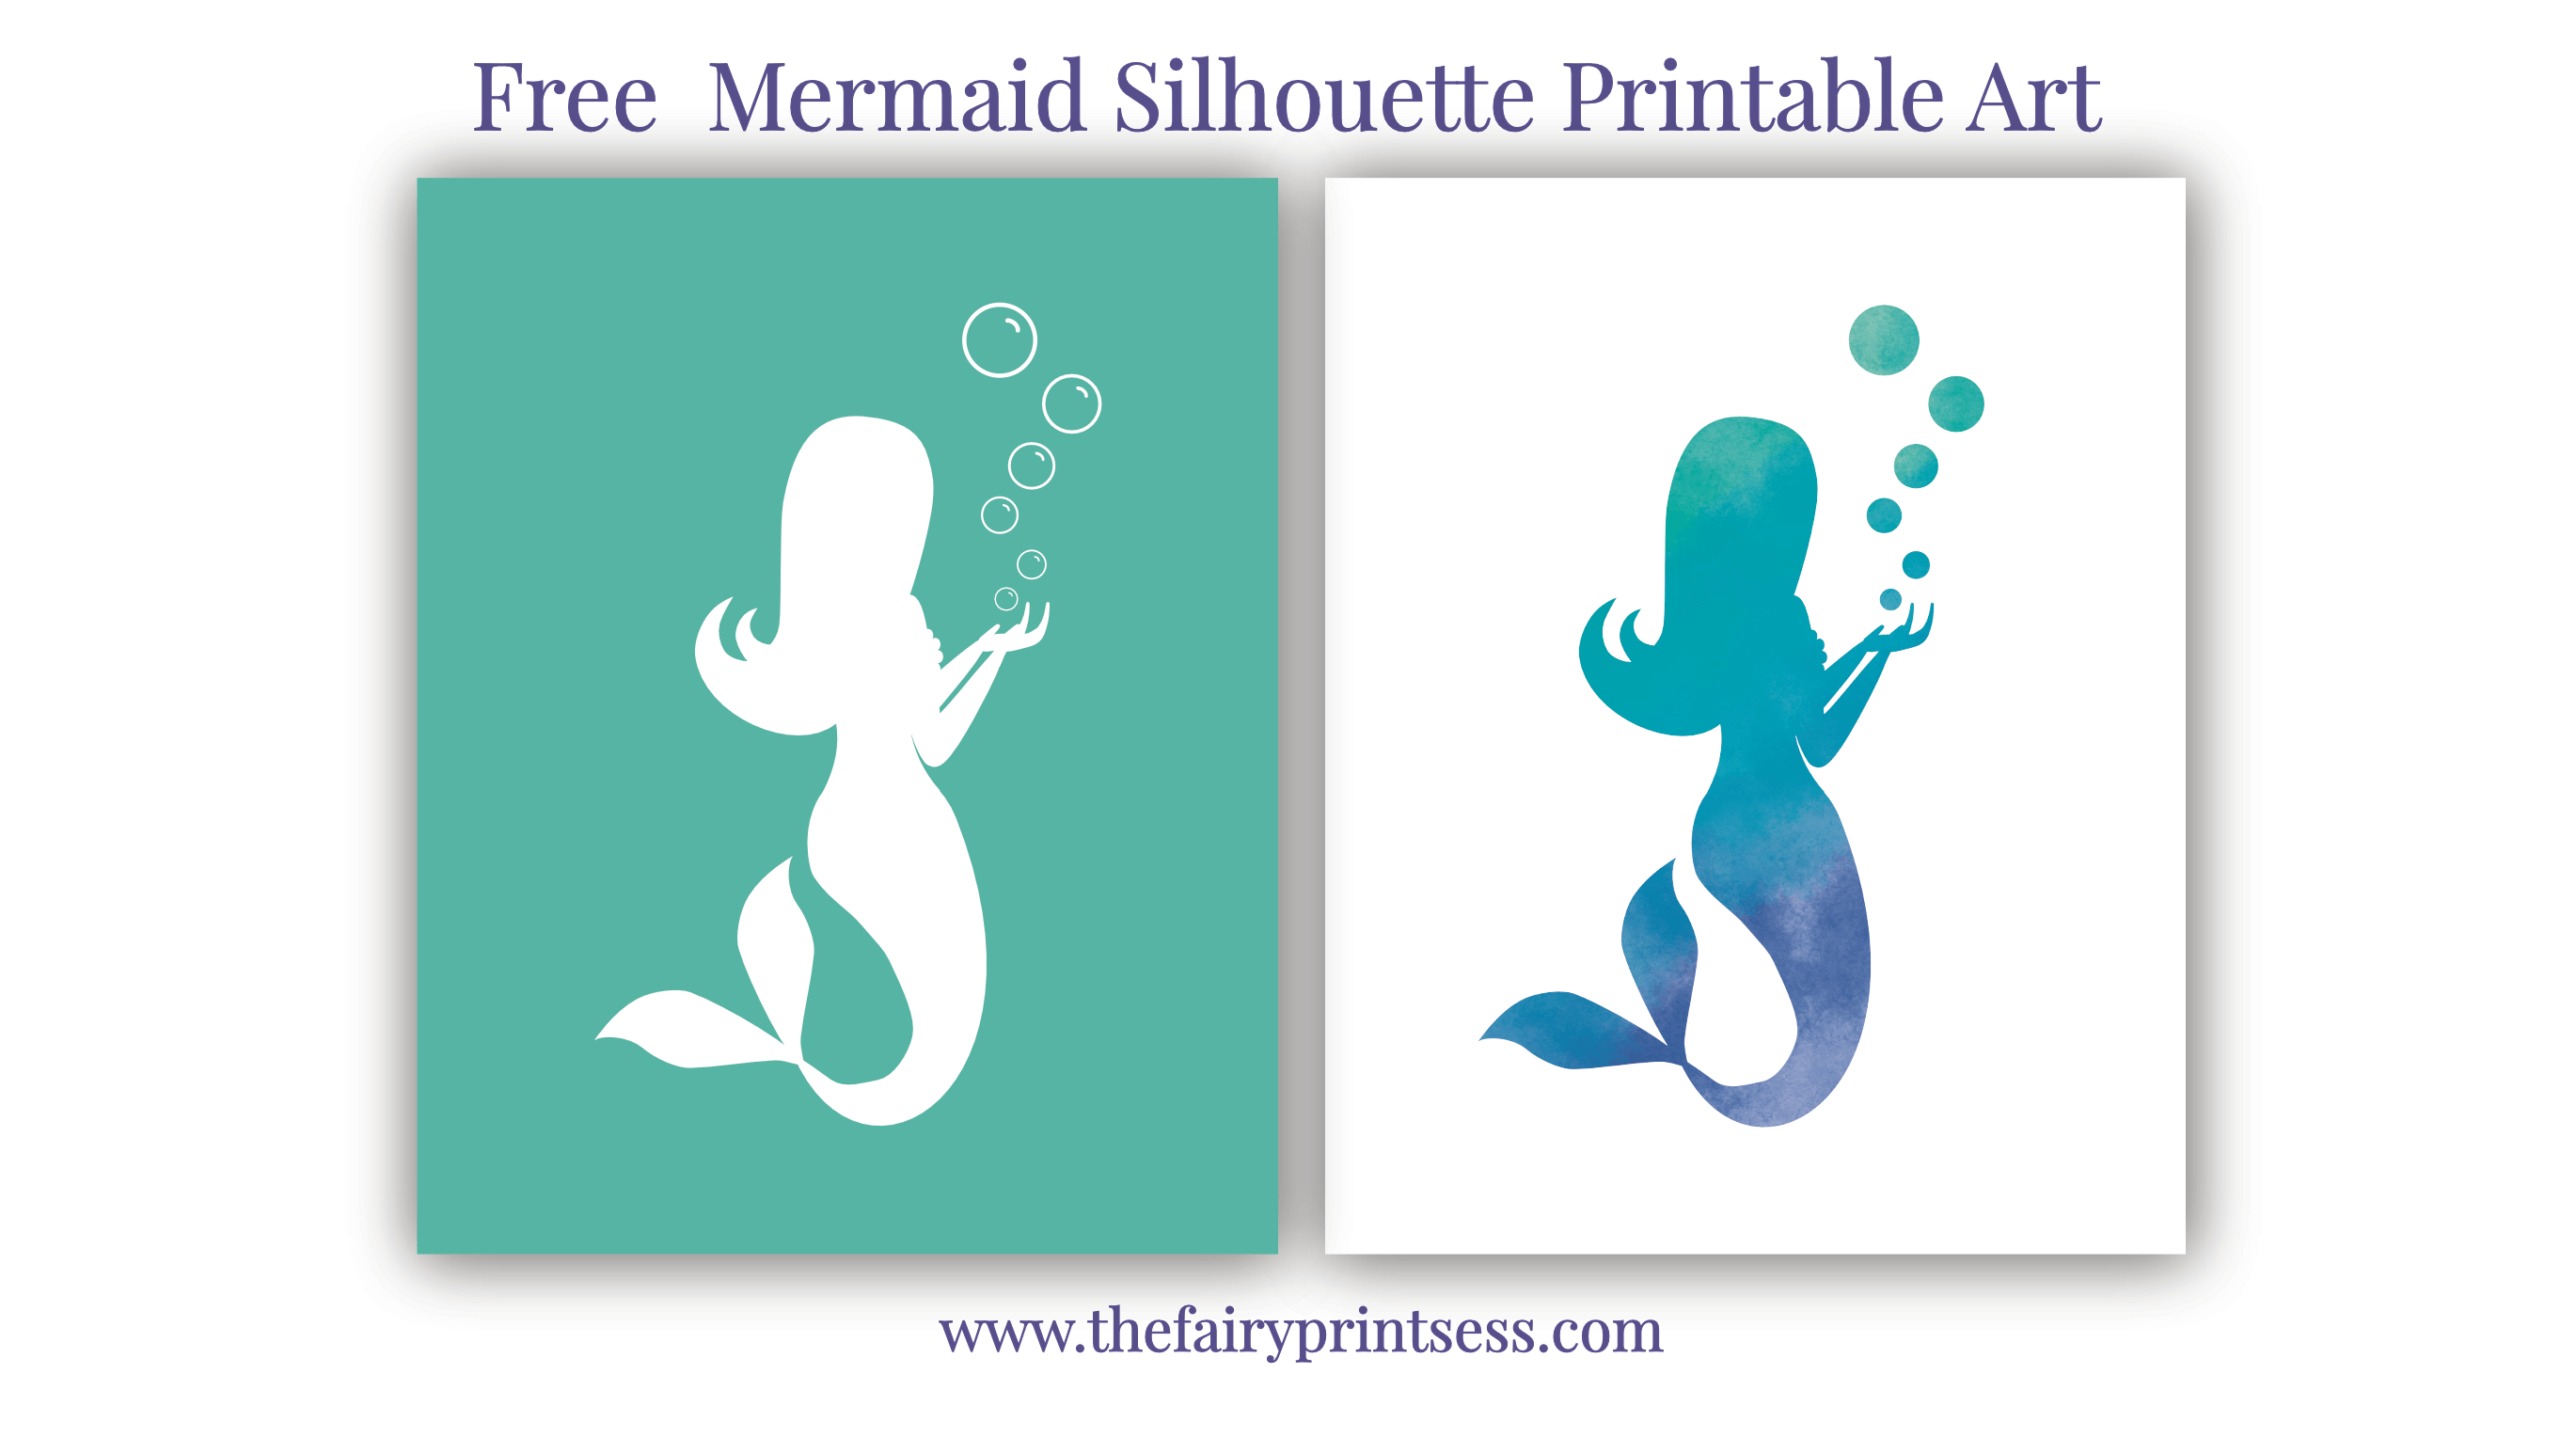 photograph about Free Printable Silhouettes called Mermaid Silhouette Totally free Printable Artwork